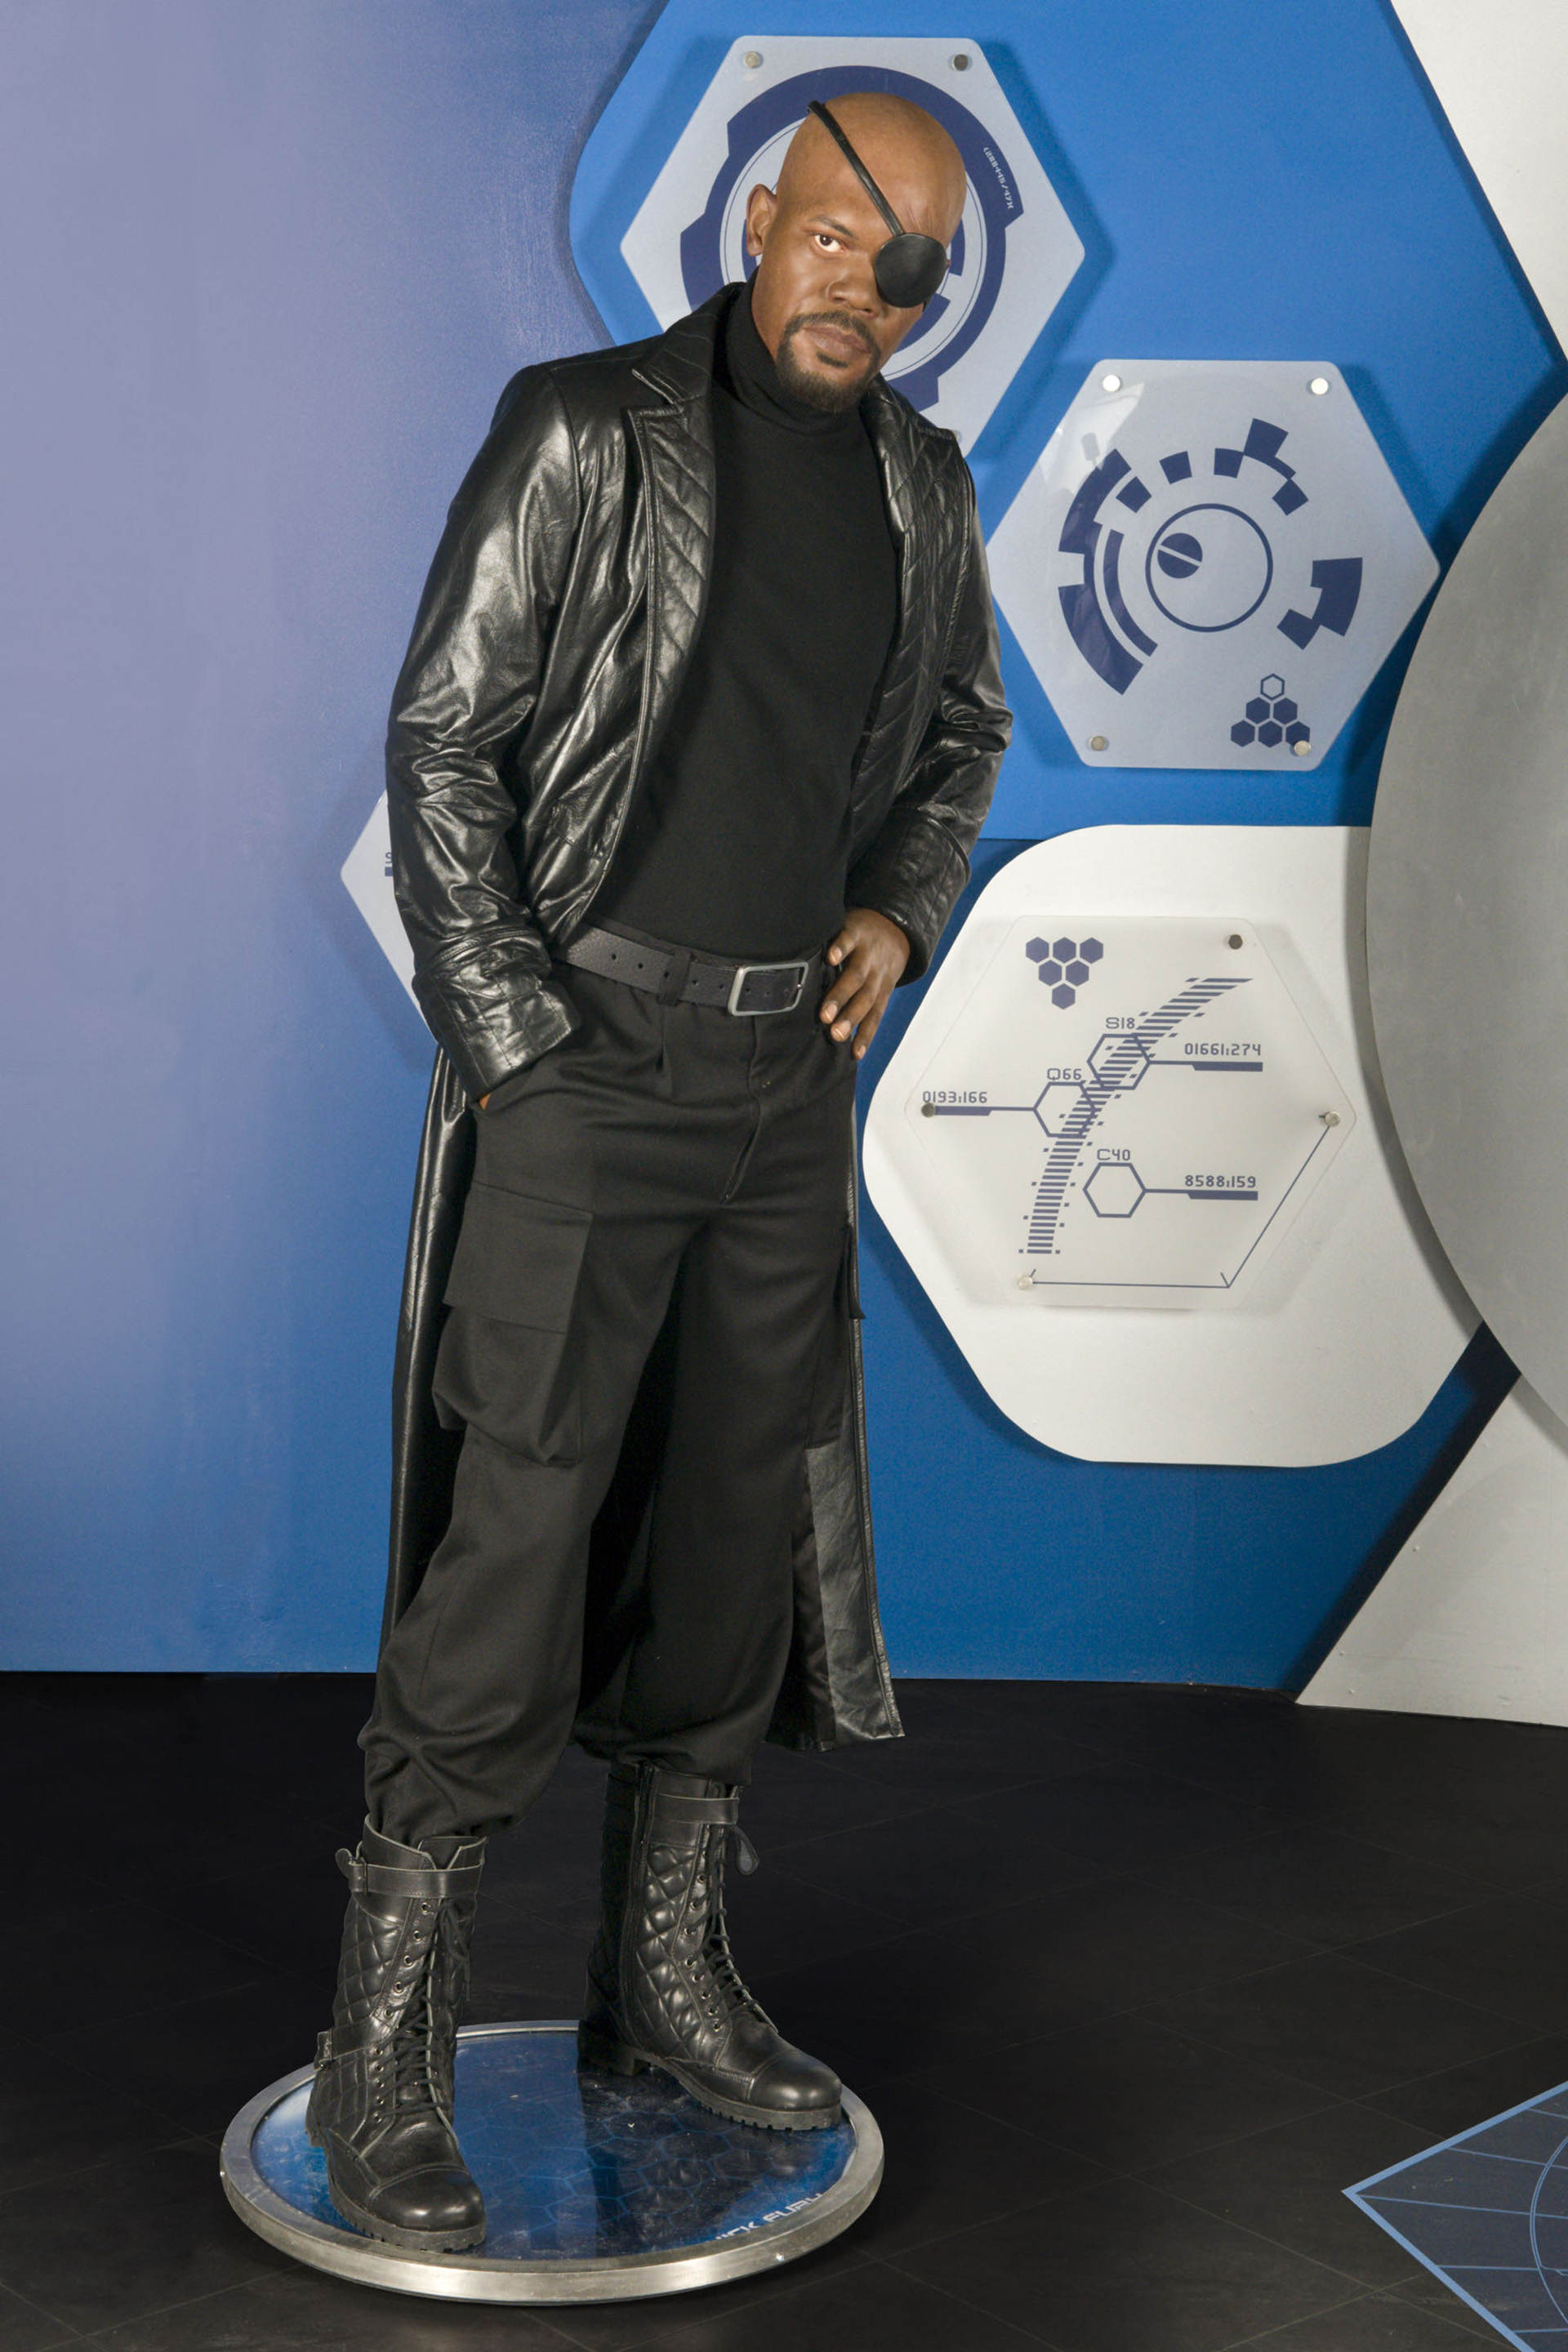 Nick Fury's figure at Madame Tussauds London